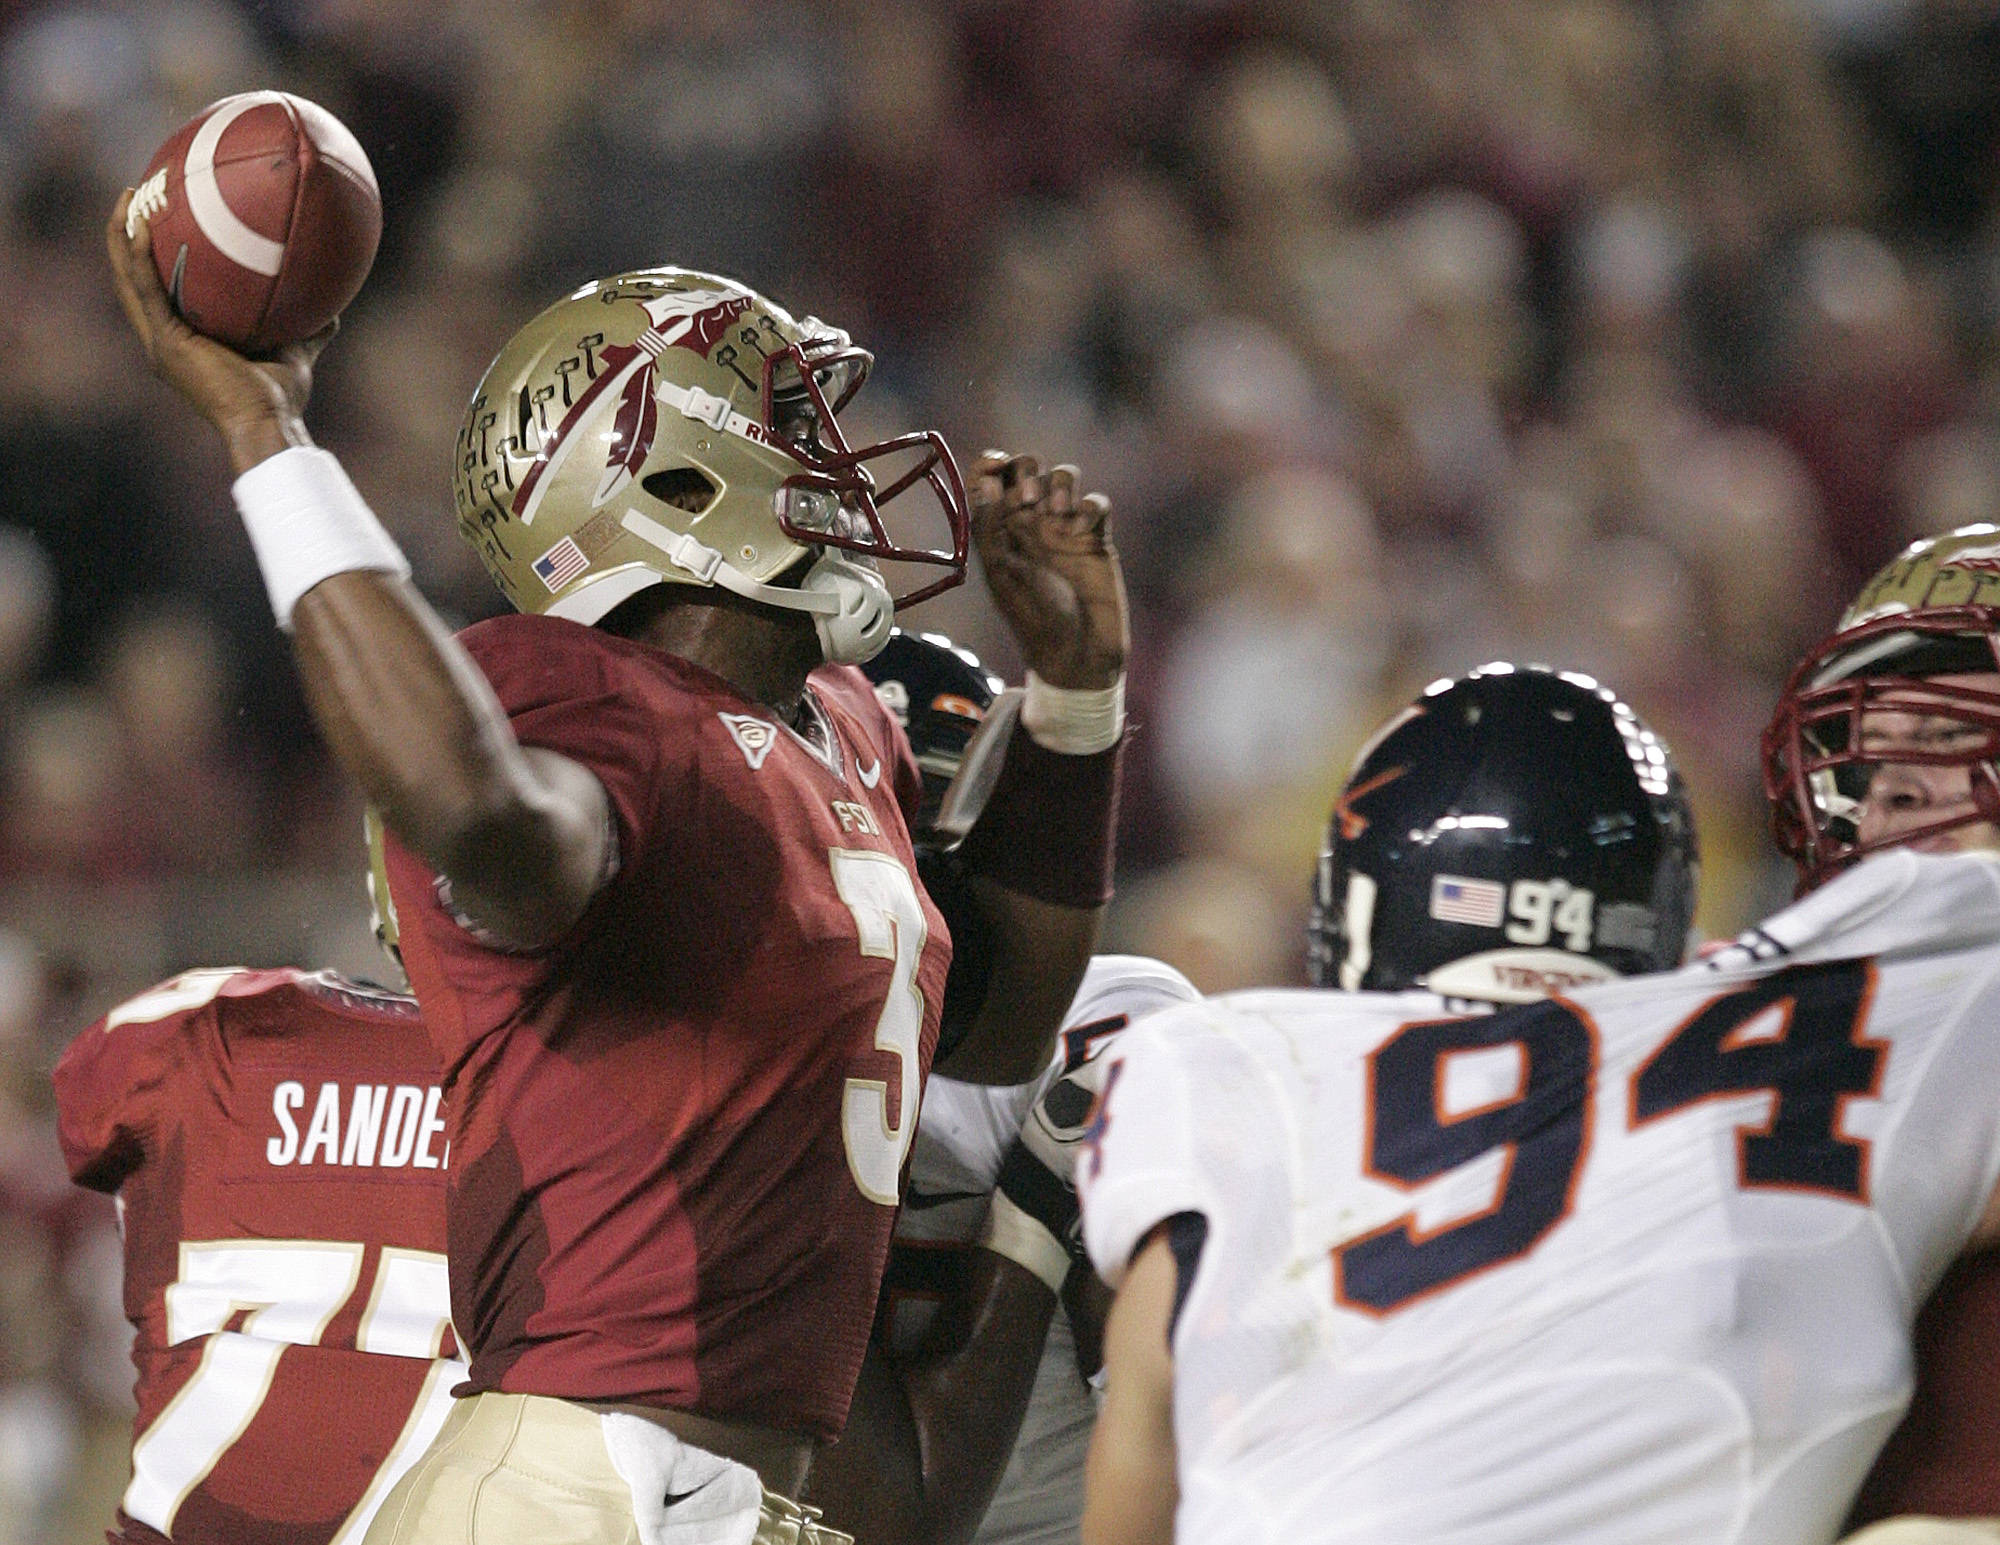 Florida State's EJ Mauel (3) is pressured by Virginia's Matt Conrath while attempting a pass.(AP Photo/Steve Cannon)